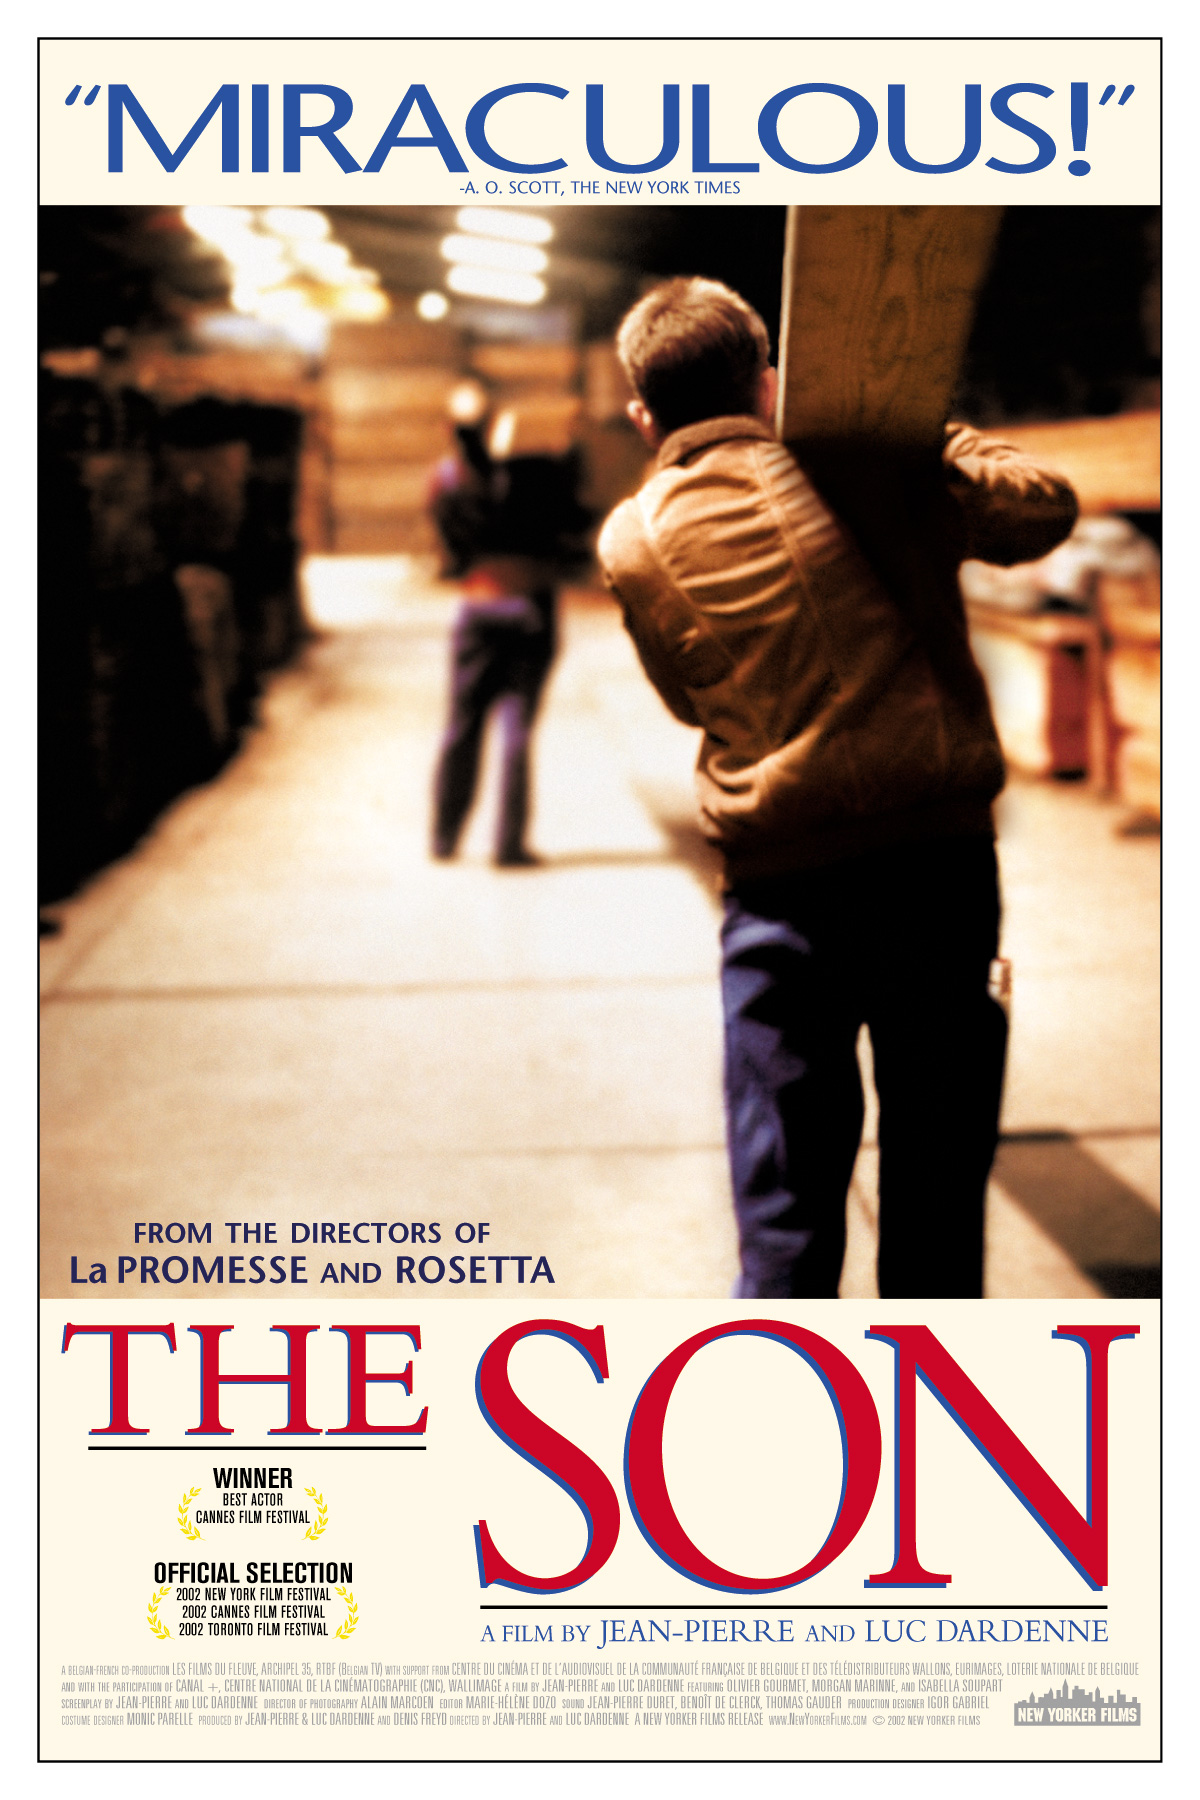 the son poster.jpg